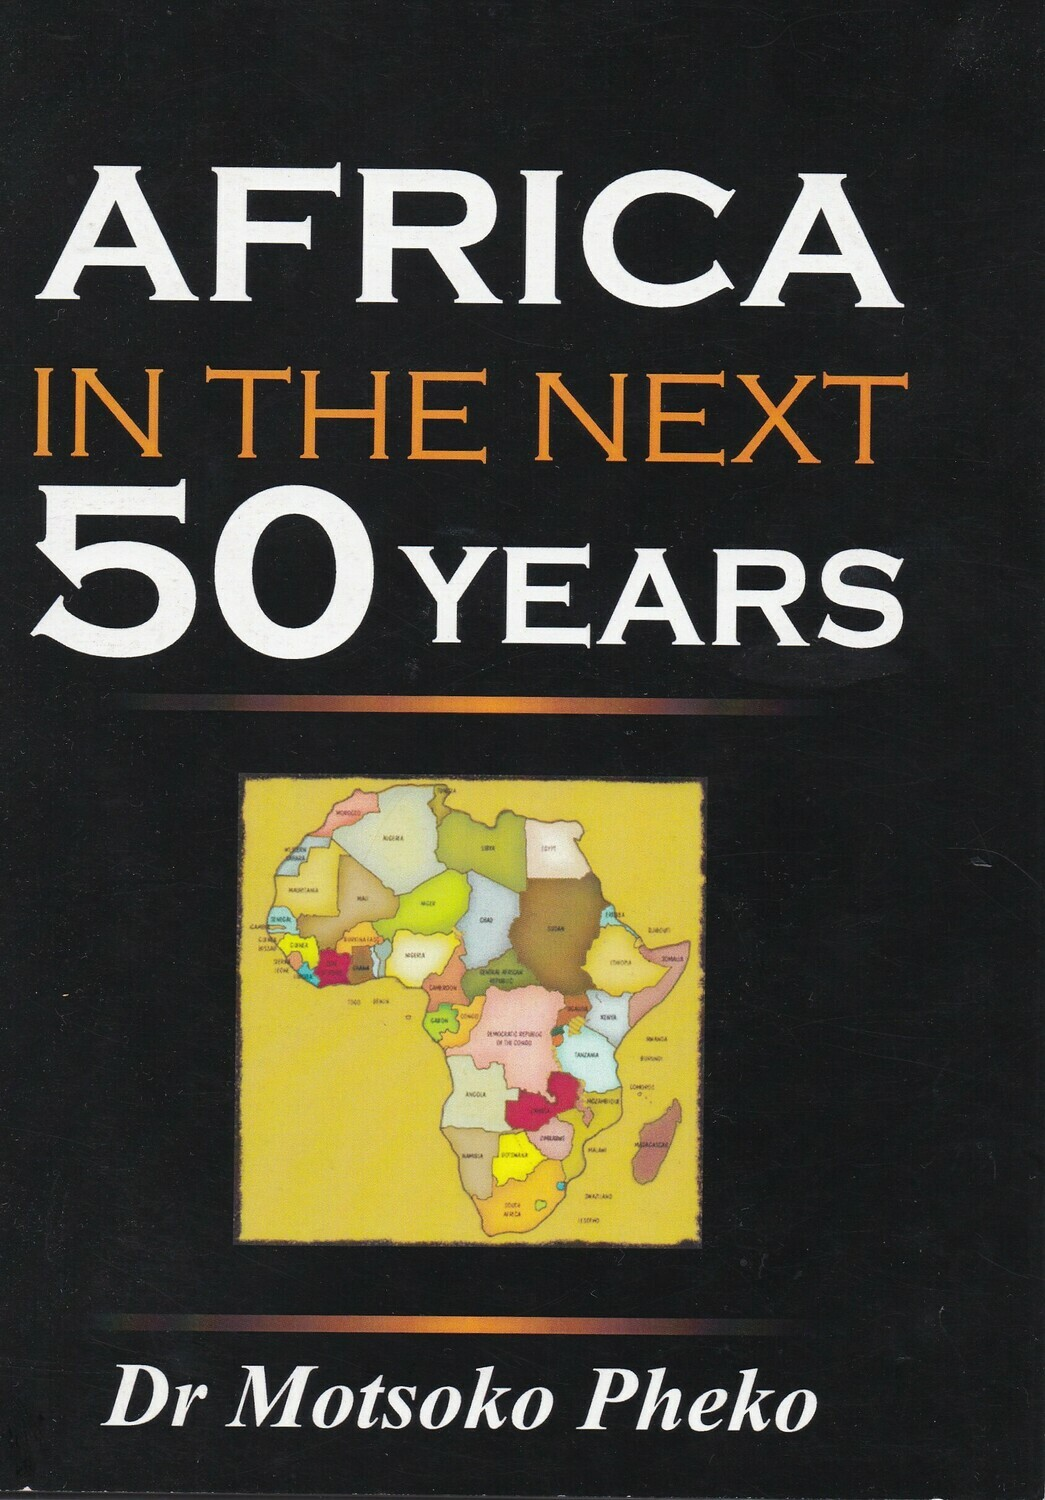 Africa in the next 50 years